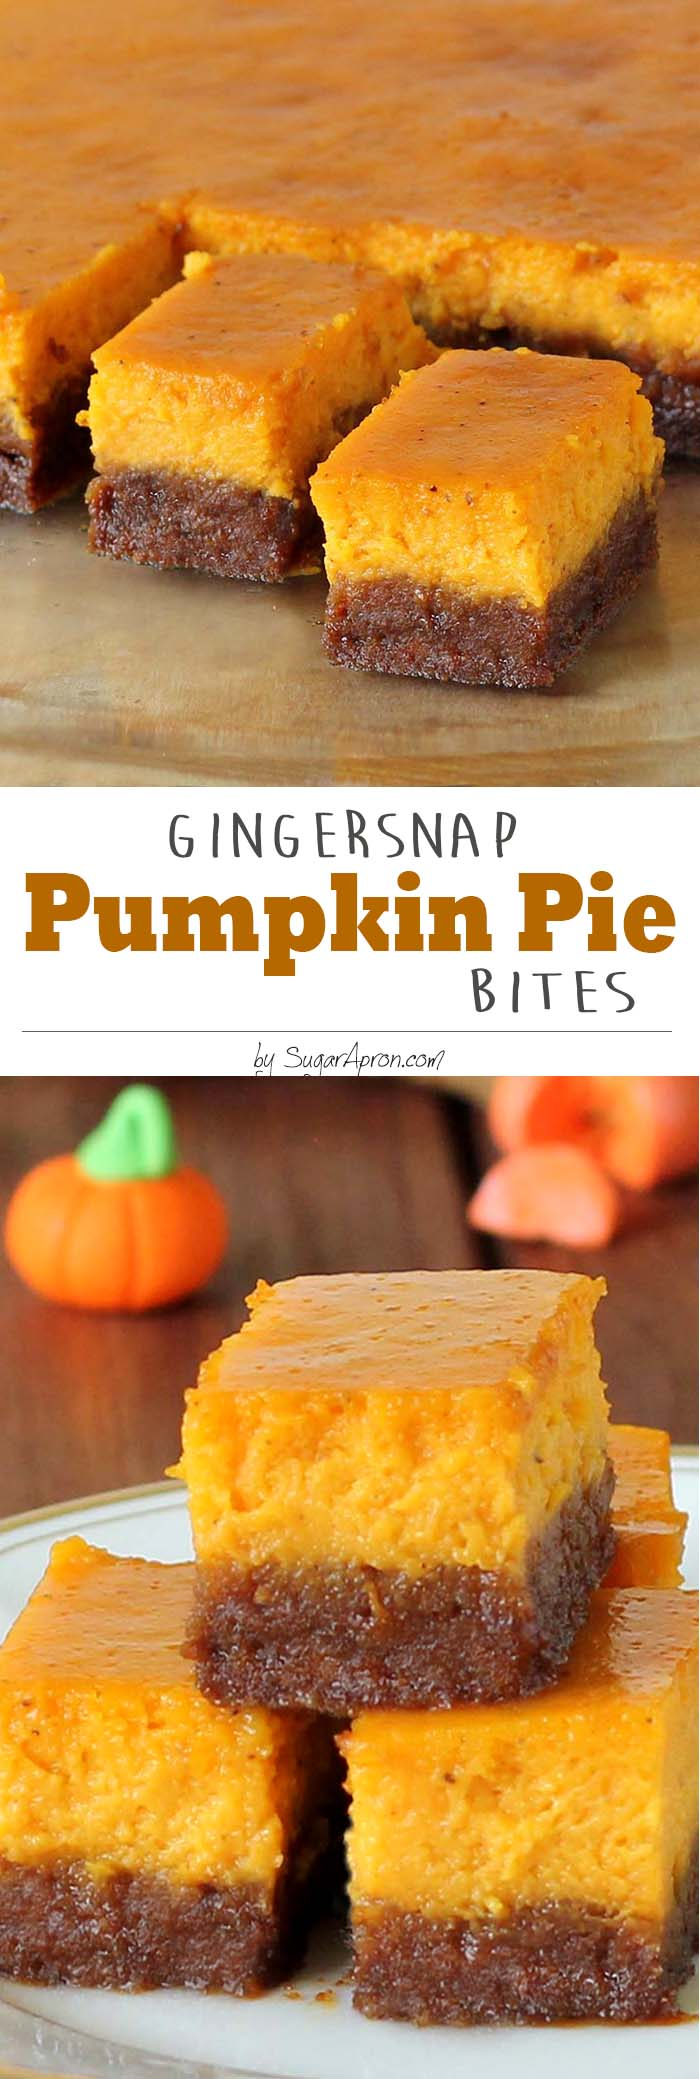 Instead of pumpkin pie this season, try this gingersnap pumpkin pie bites.